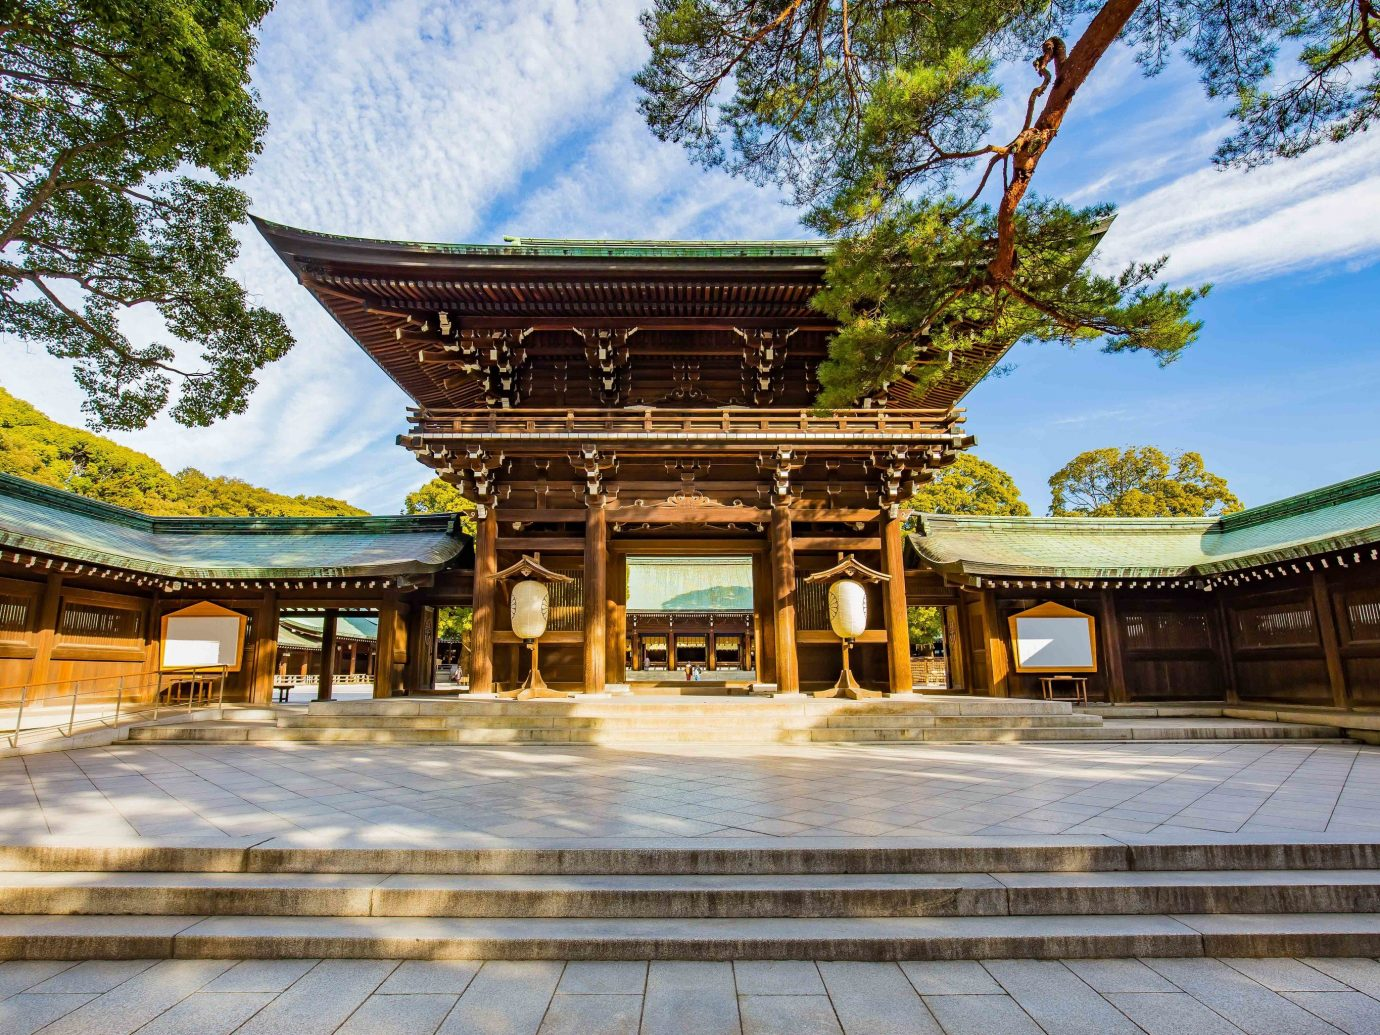 Trip Ideas outdoor tree sky building chinese architecture japanese architecture shinto shrine shrine historic site tourist attraction temple pagoda leisure place of worship estate